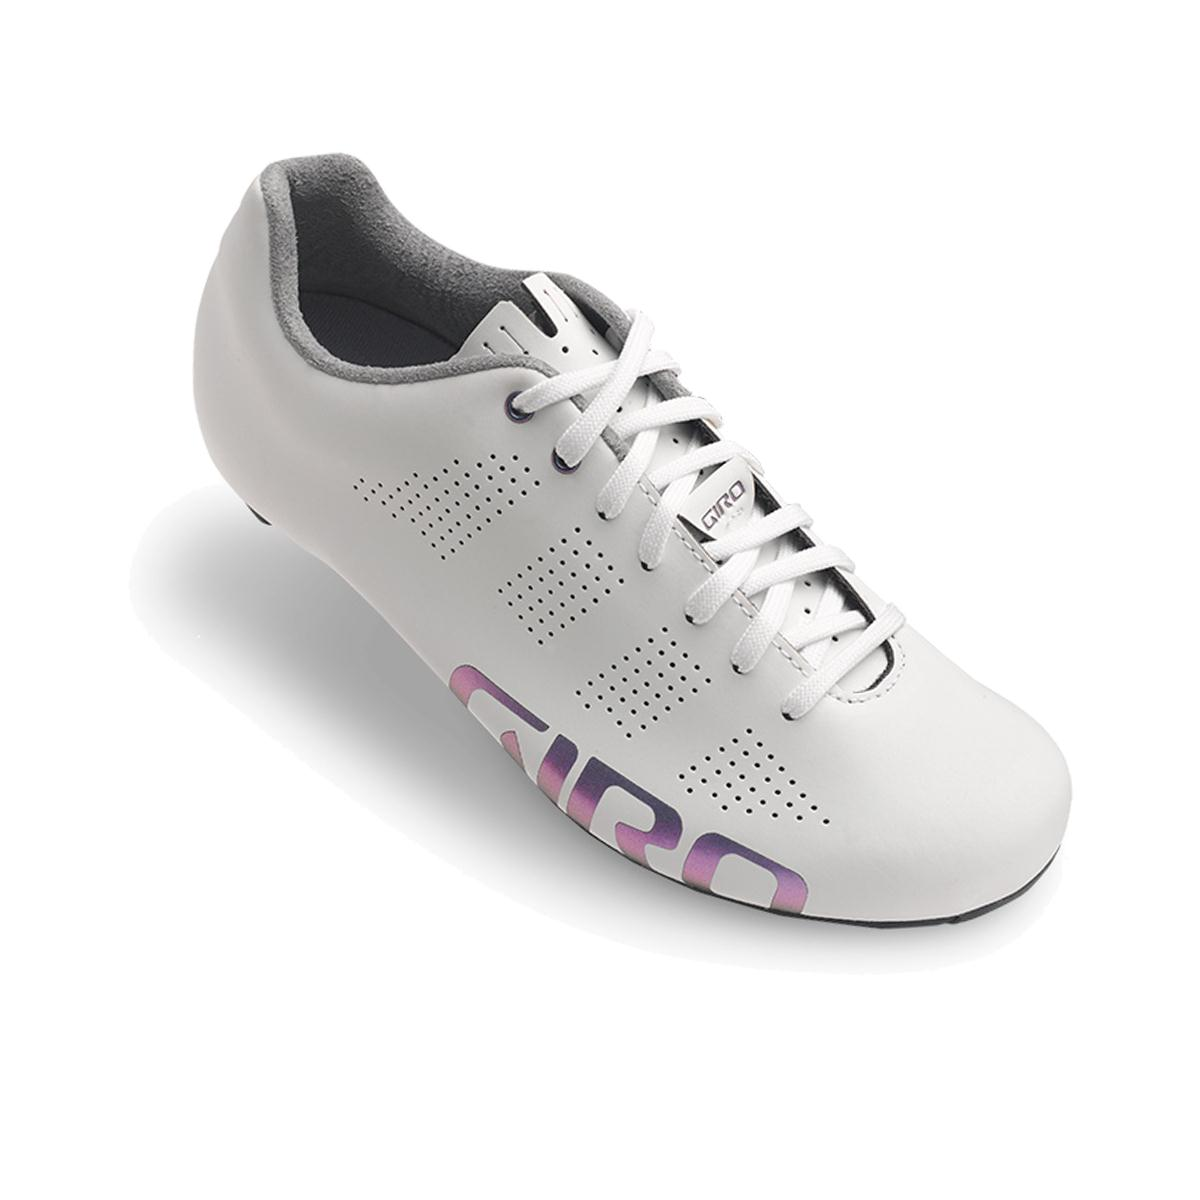 GIRO Empire Womens Road Cycling Shoes 2018 White Reflective 42